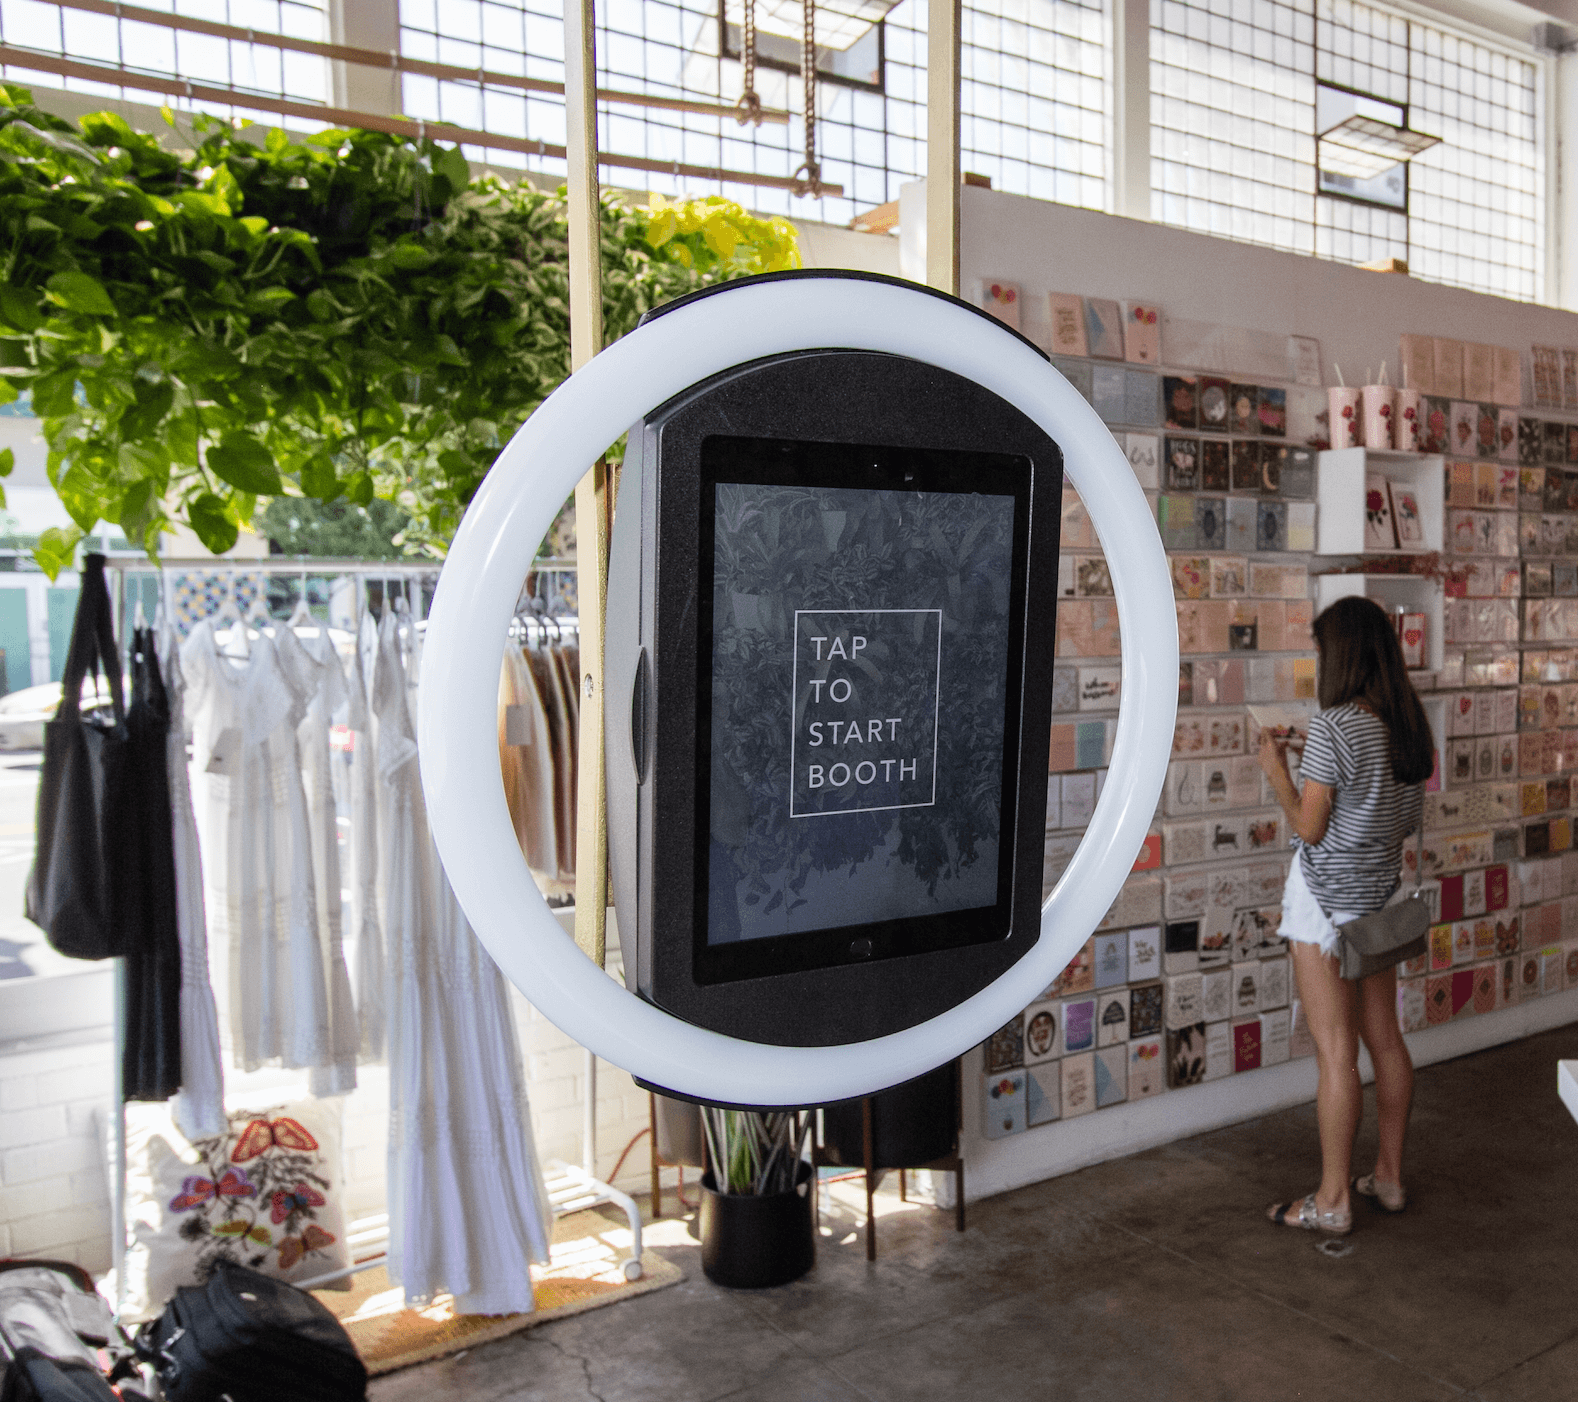 Retail photo booth, selfie wall and selfie station